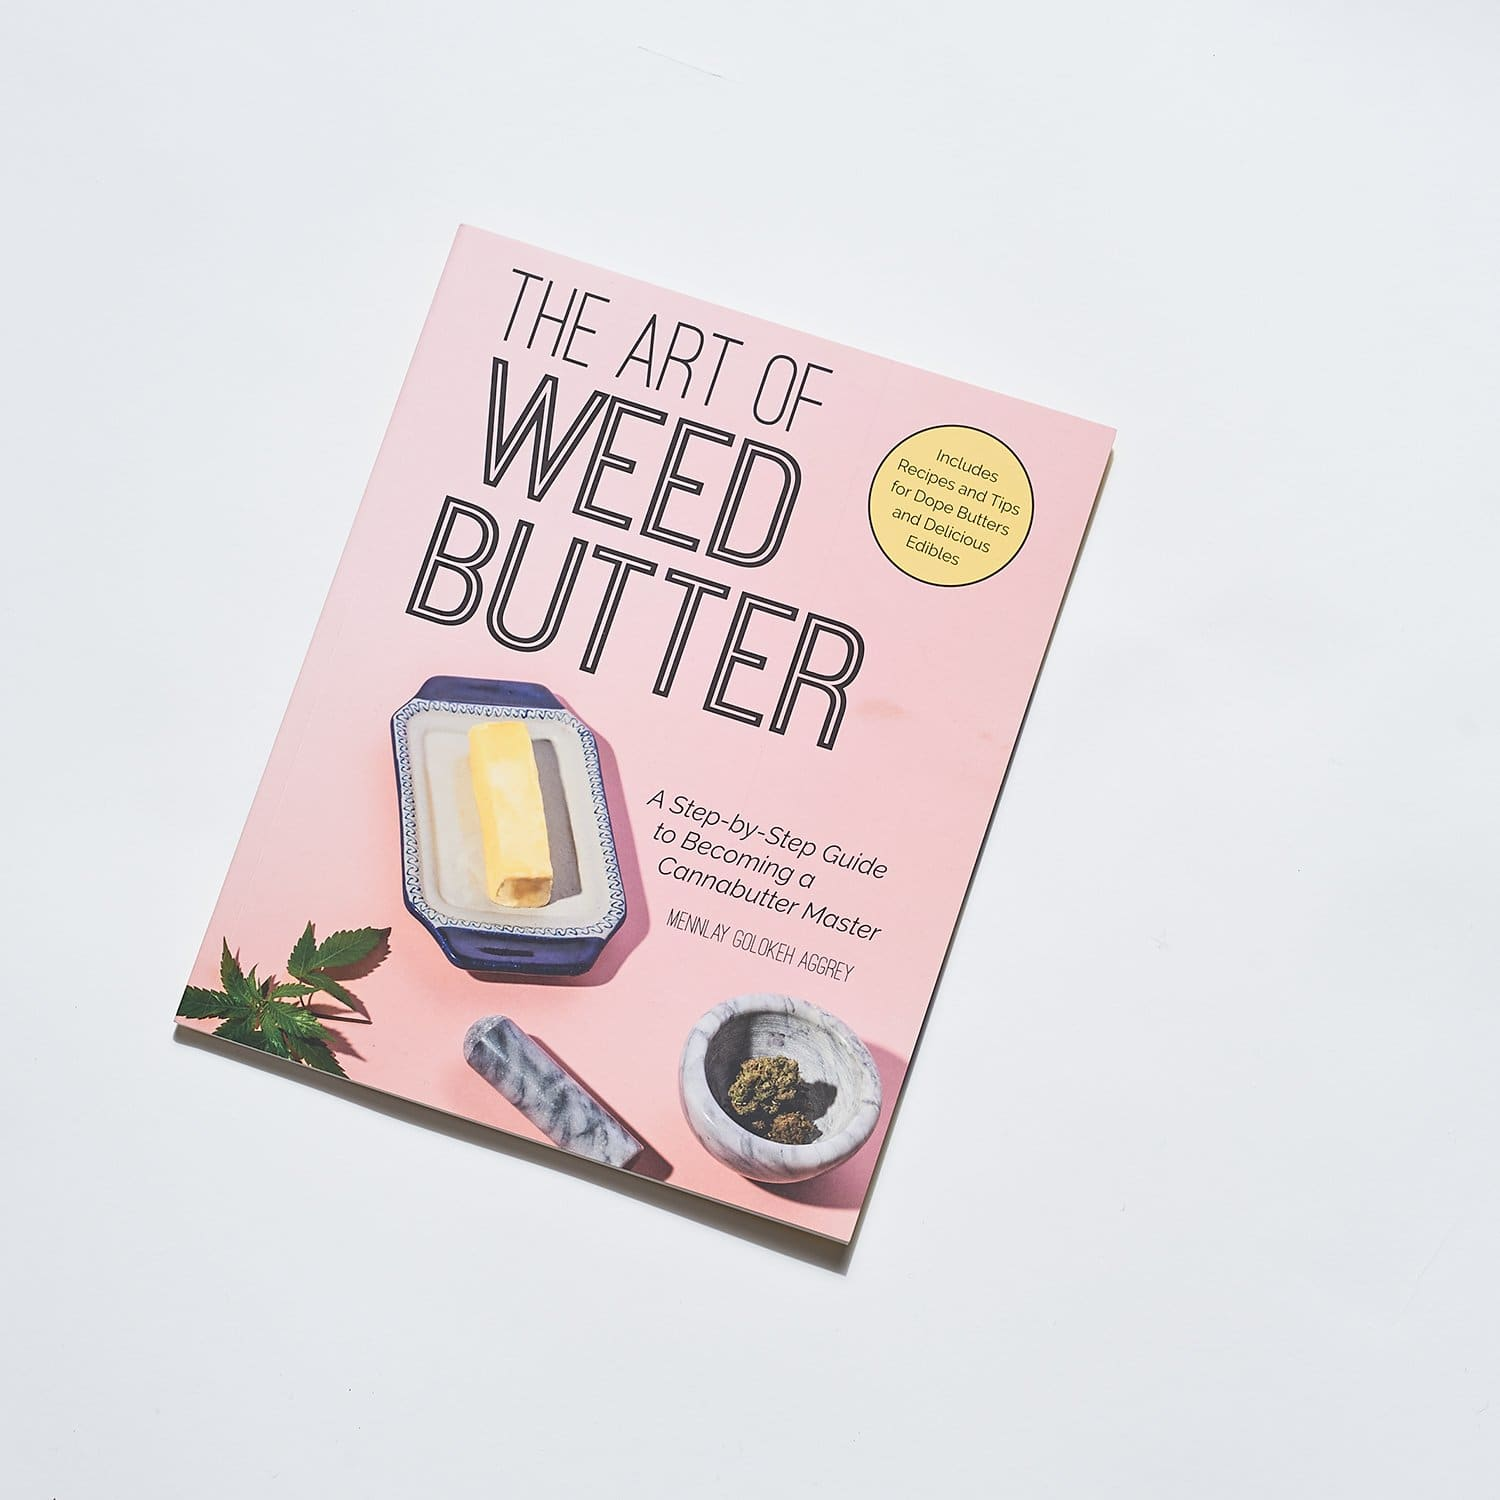 The Art of Herb Butter: a Step-by-step Guide to becoming a